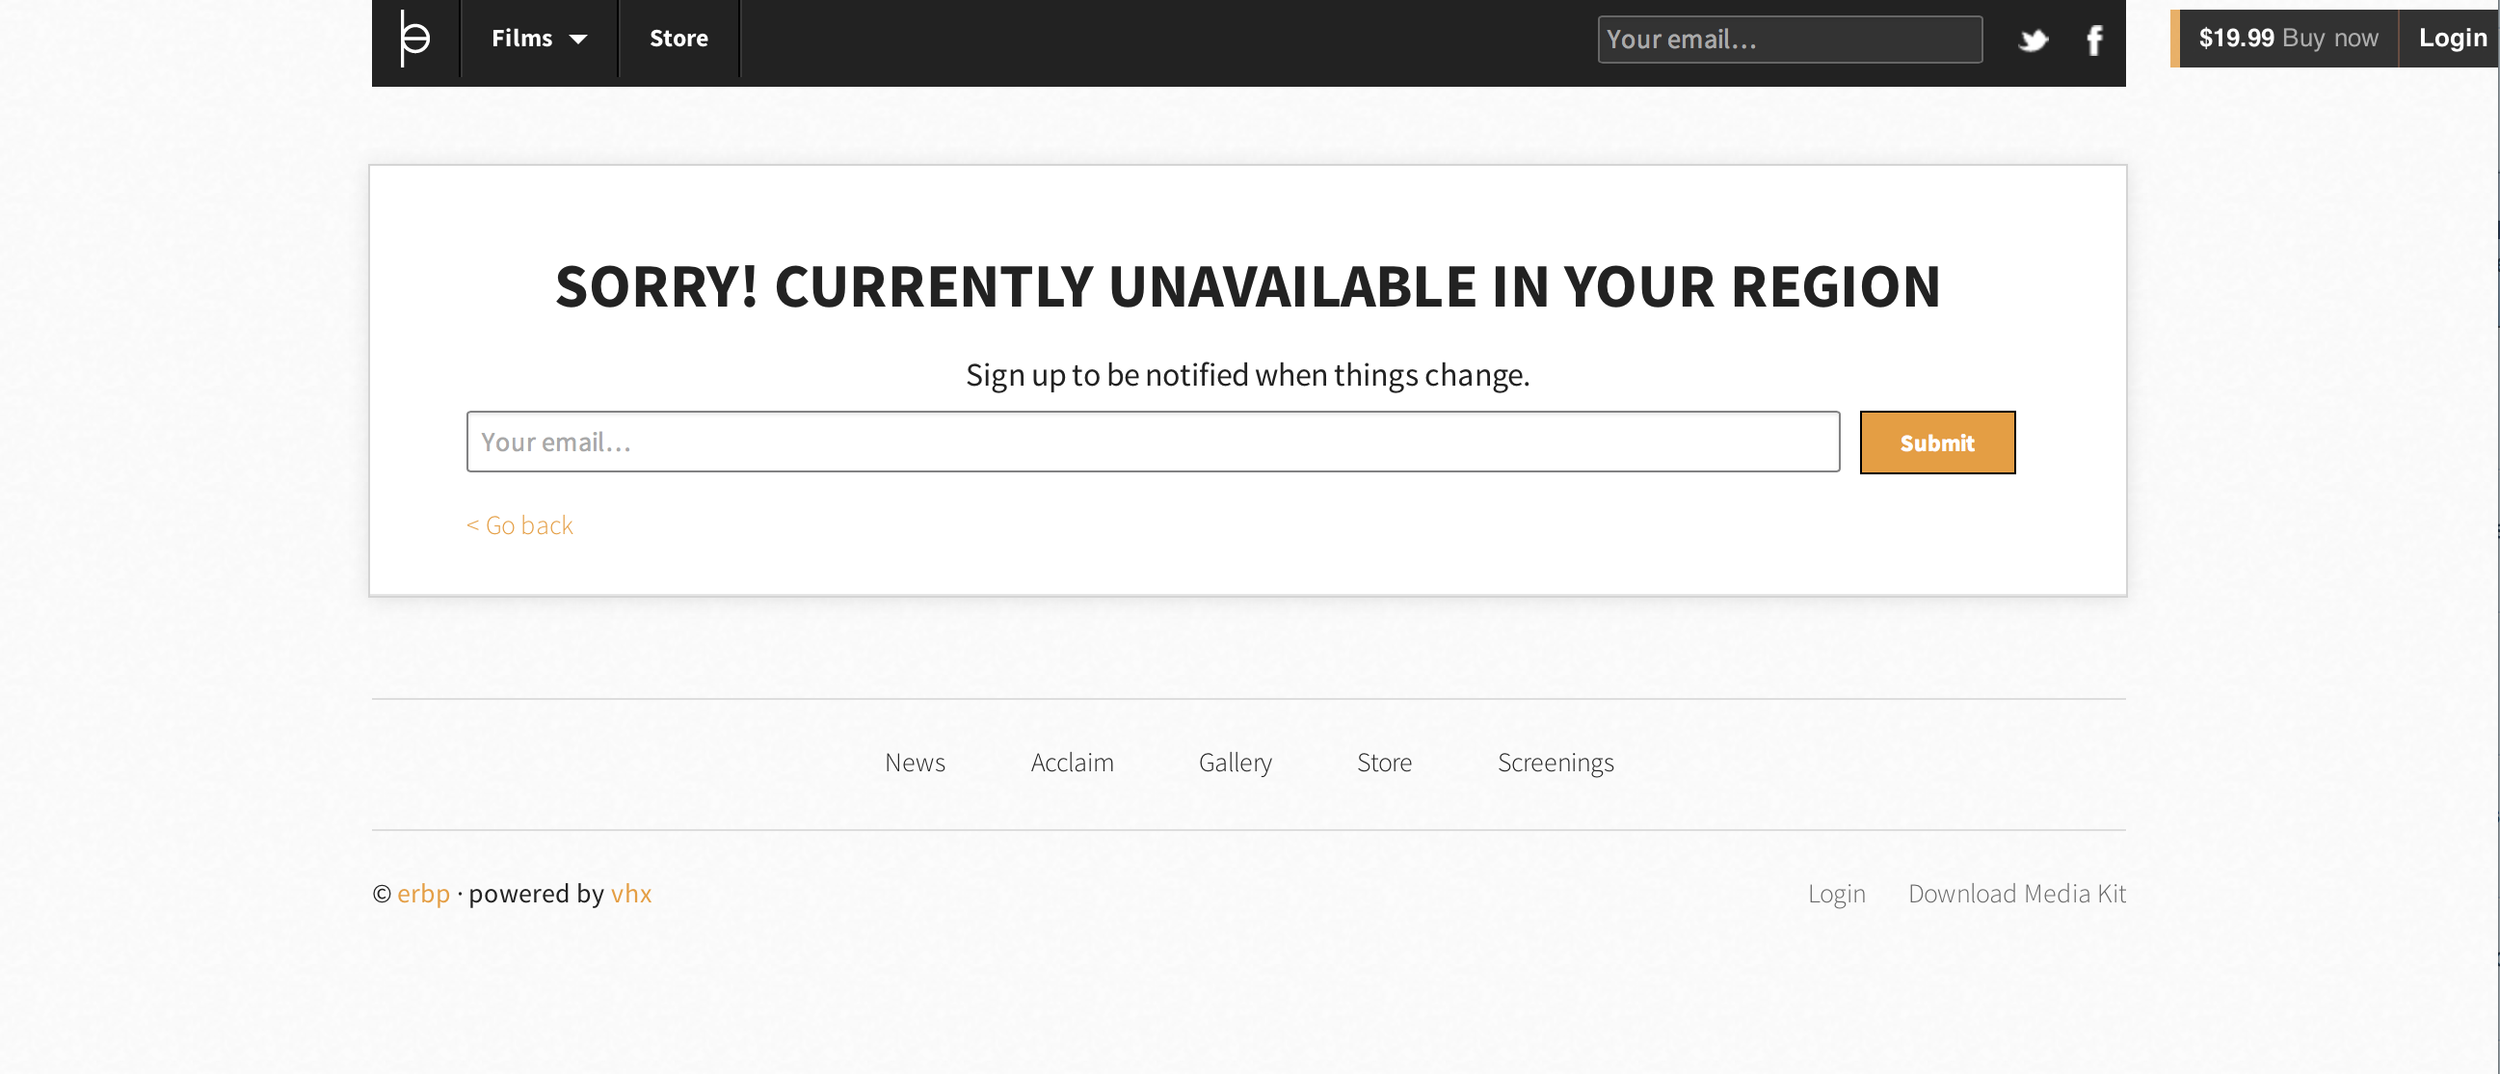 unavailable_in_your_region.png